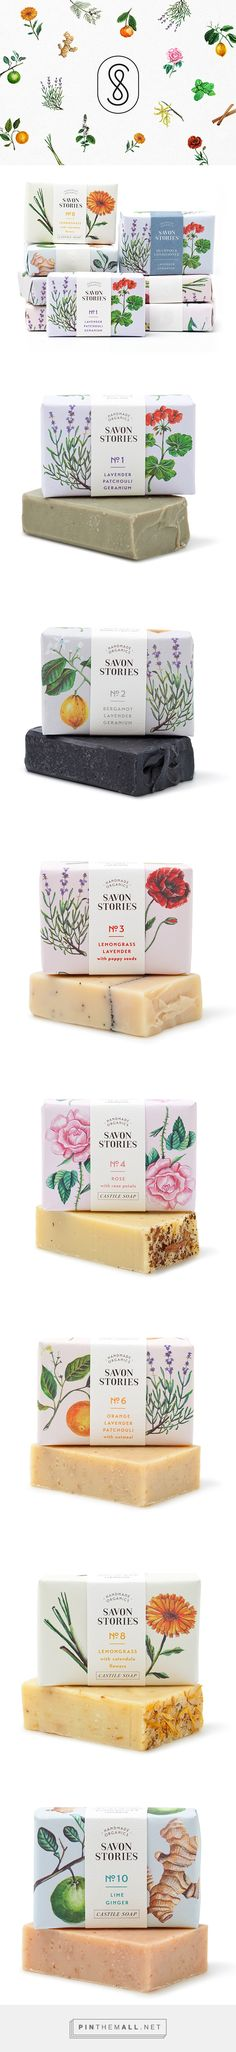 Savon Stories packaging on Behance by Menta curated by Packaging Diva PD. Savon Stories is an English company specialised in the handcraft of 100% organic soaps produced in small batches.